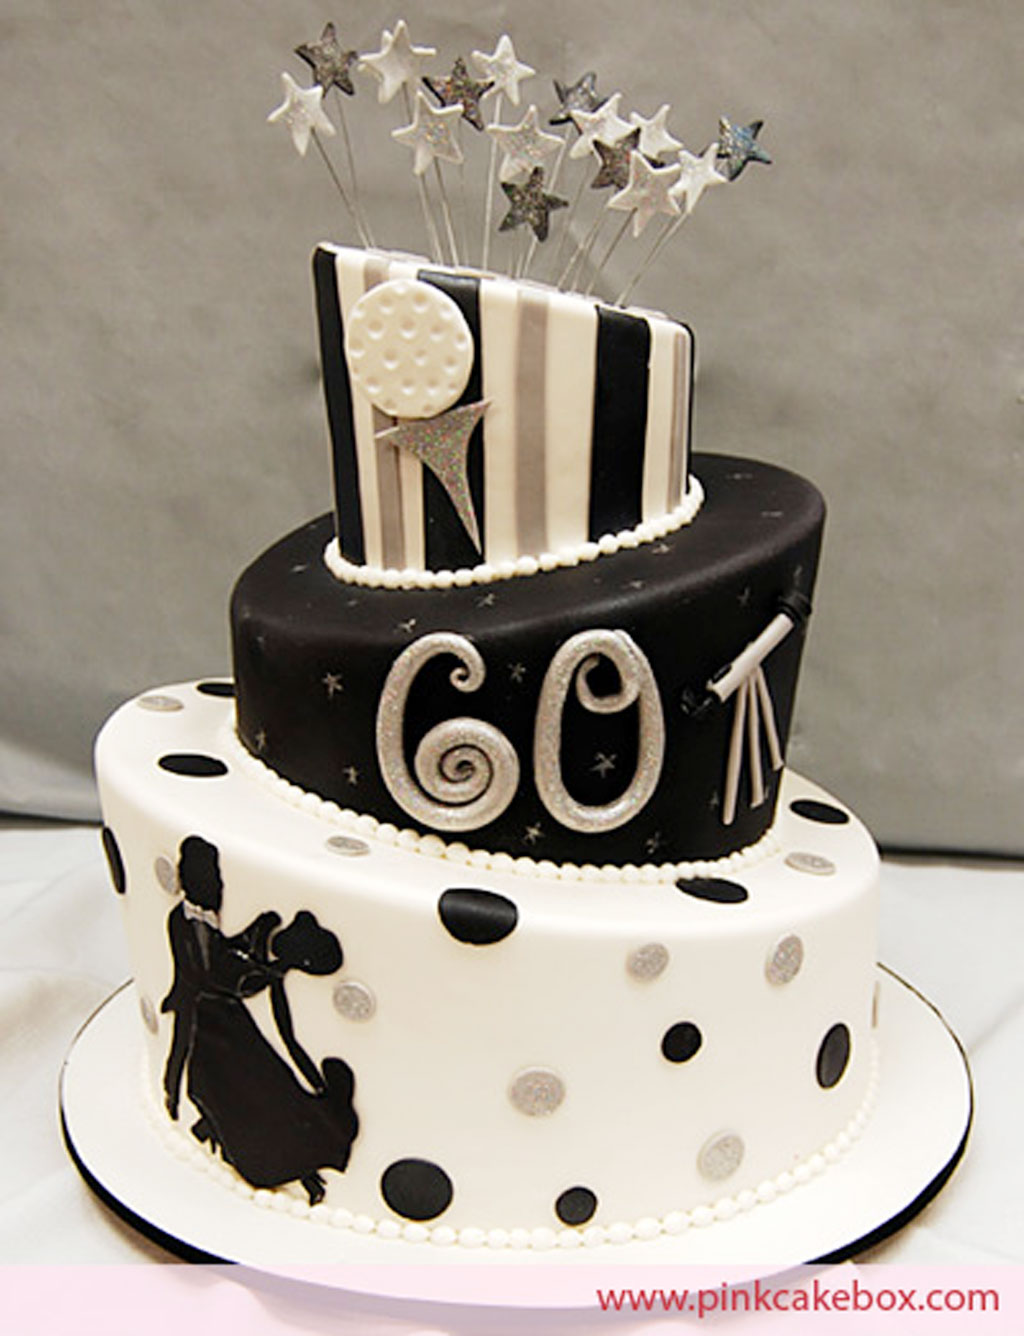 birthday cake design download ; 60th-Birthday-Cake-Designs